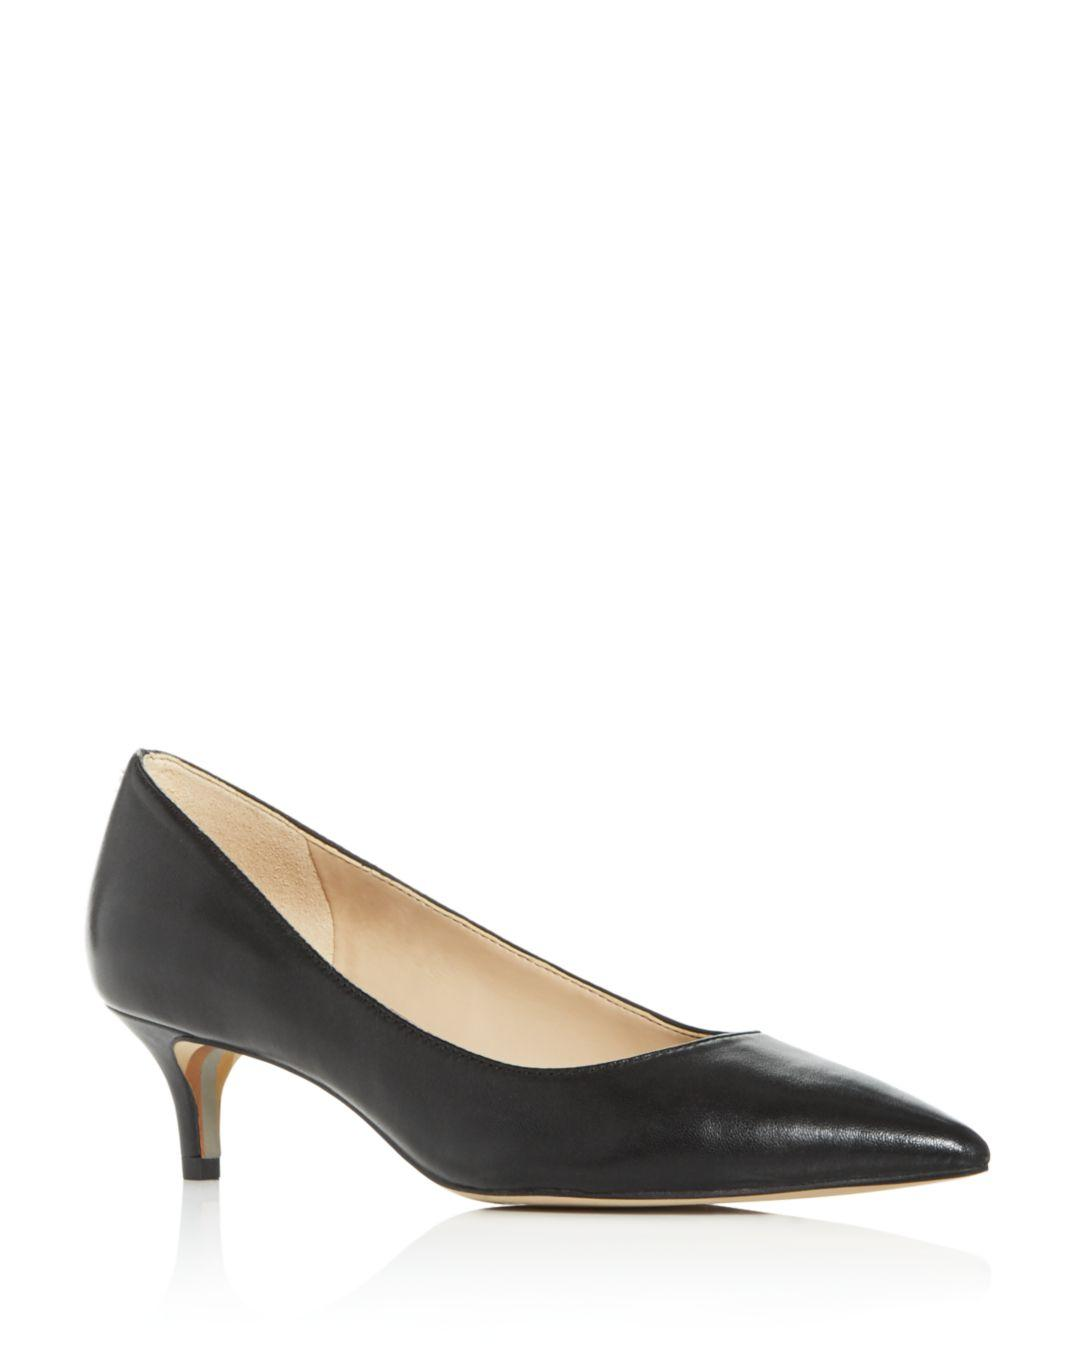 69d4ec48500 Sam Edelman Women's Dori Kitten - Heel Pumps in Black - Lyst